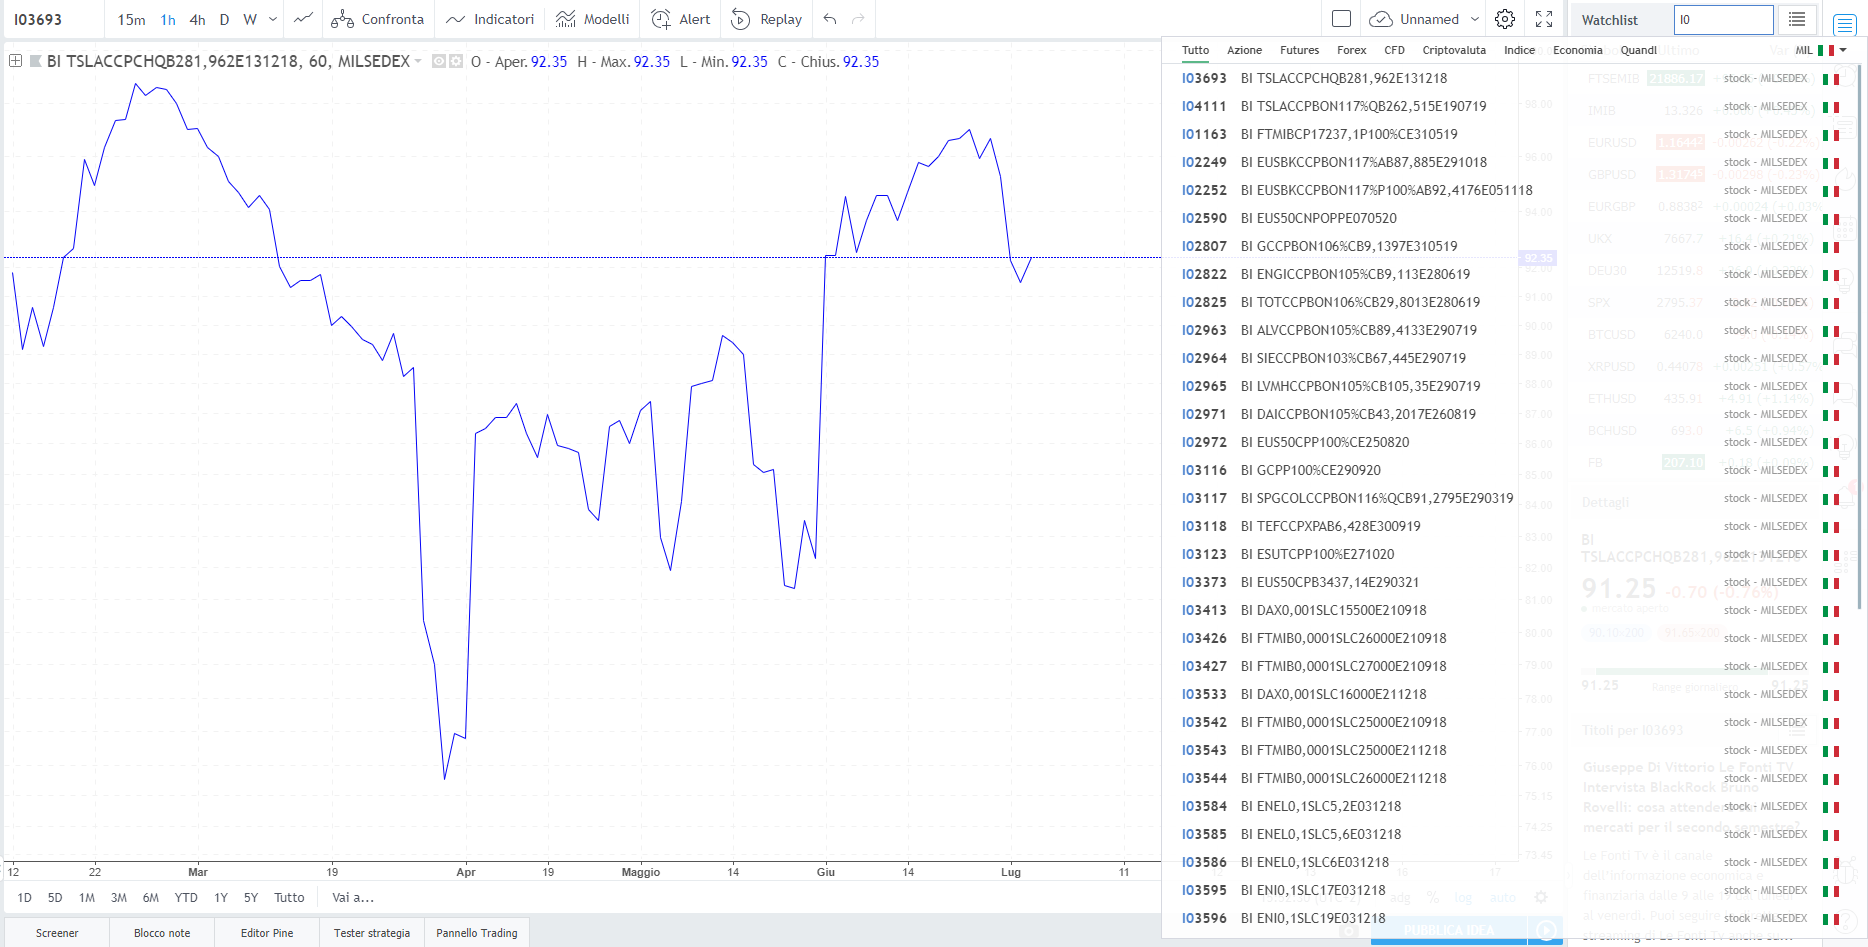 screenshot-it-tradingview-com-2018-07-13-15-52-32